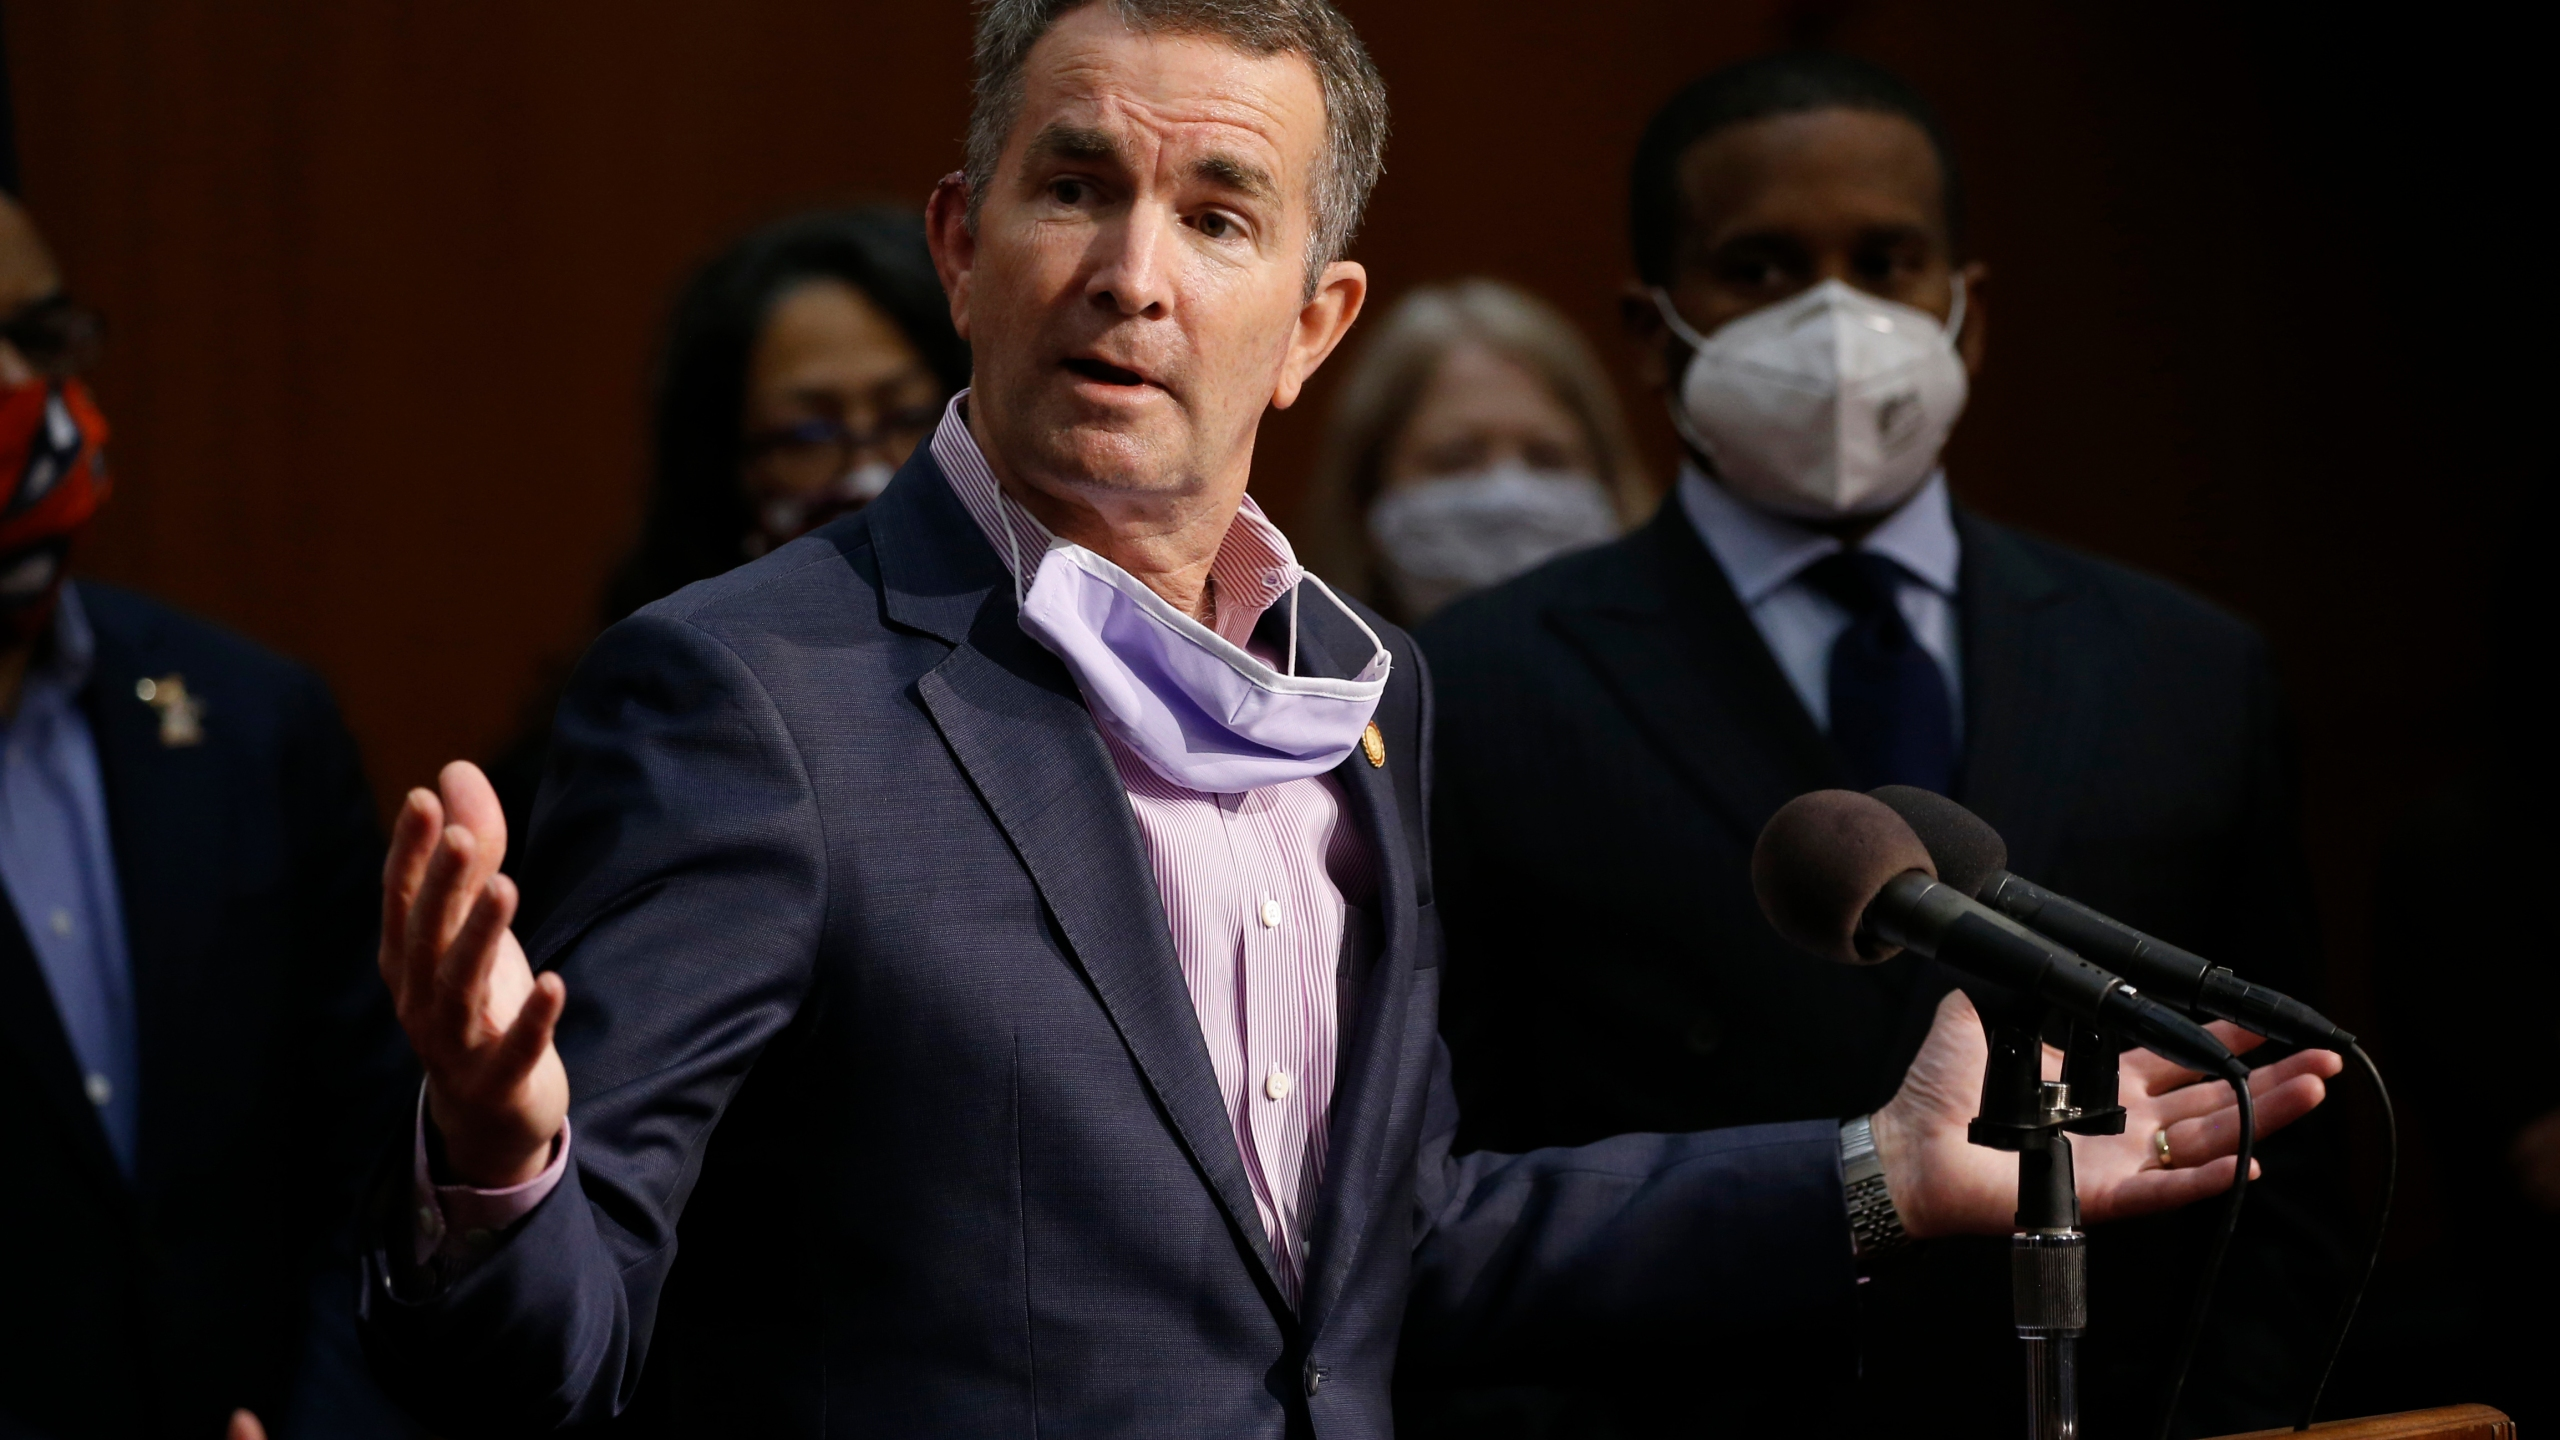 Northam 2020 Halloween Costume Former Va Governor Northam seeks another ban on evictions in Virginia   WAVY.com